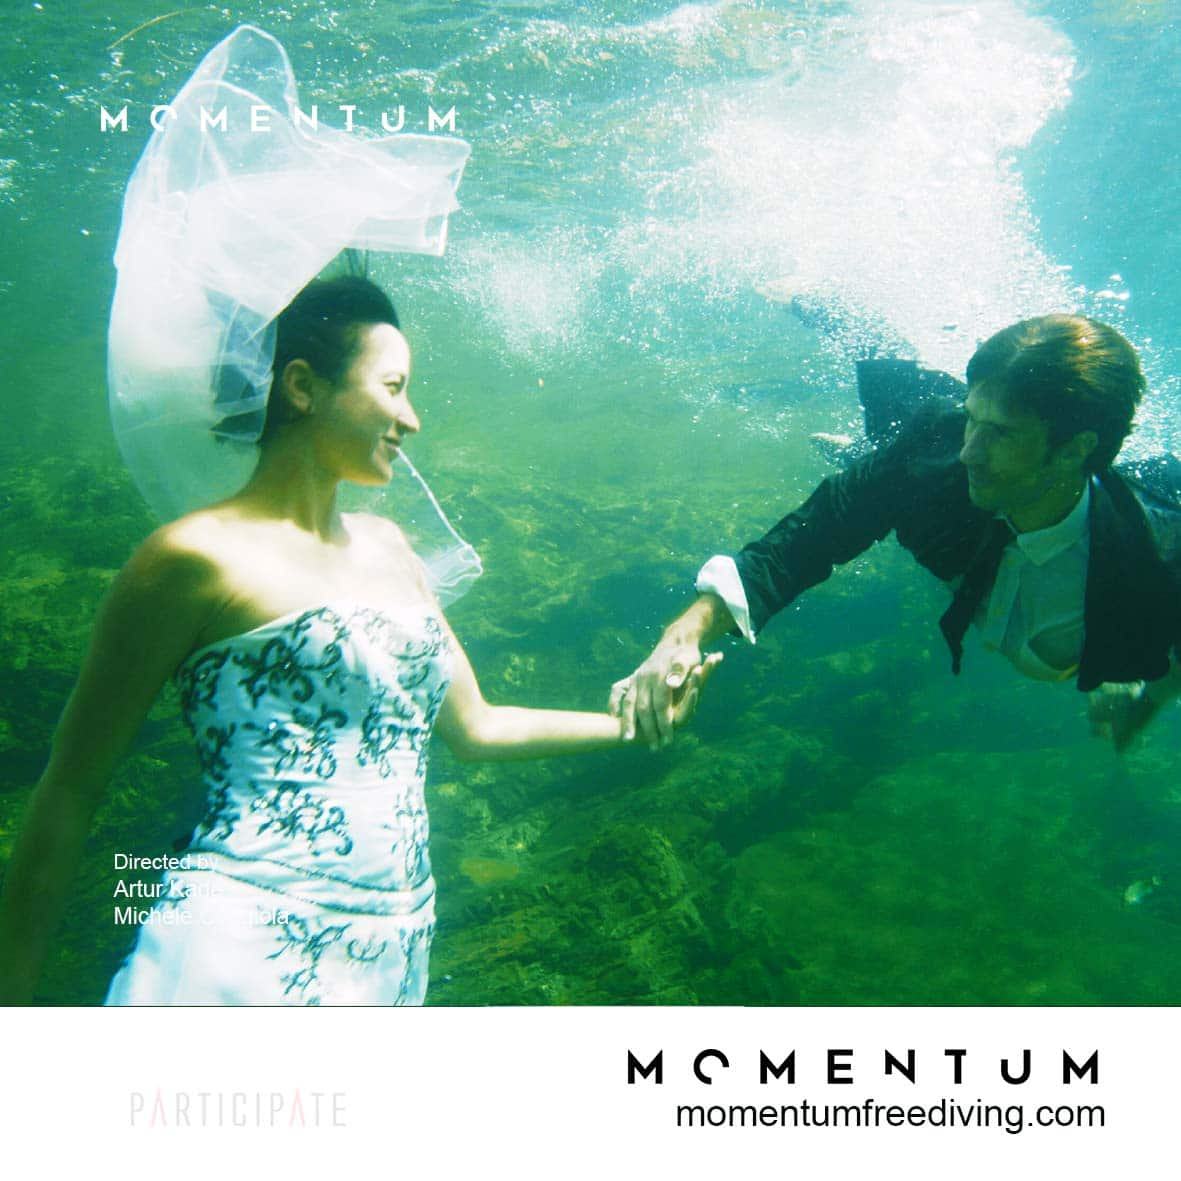 Guillaume Nery & Julie Gautier shooting a scene from Momentum Freediving Film.